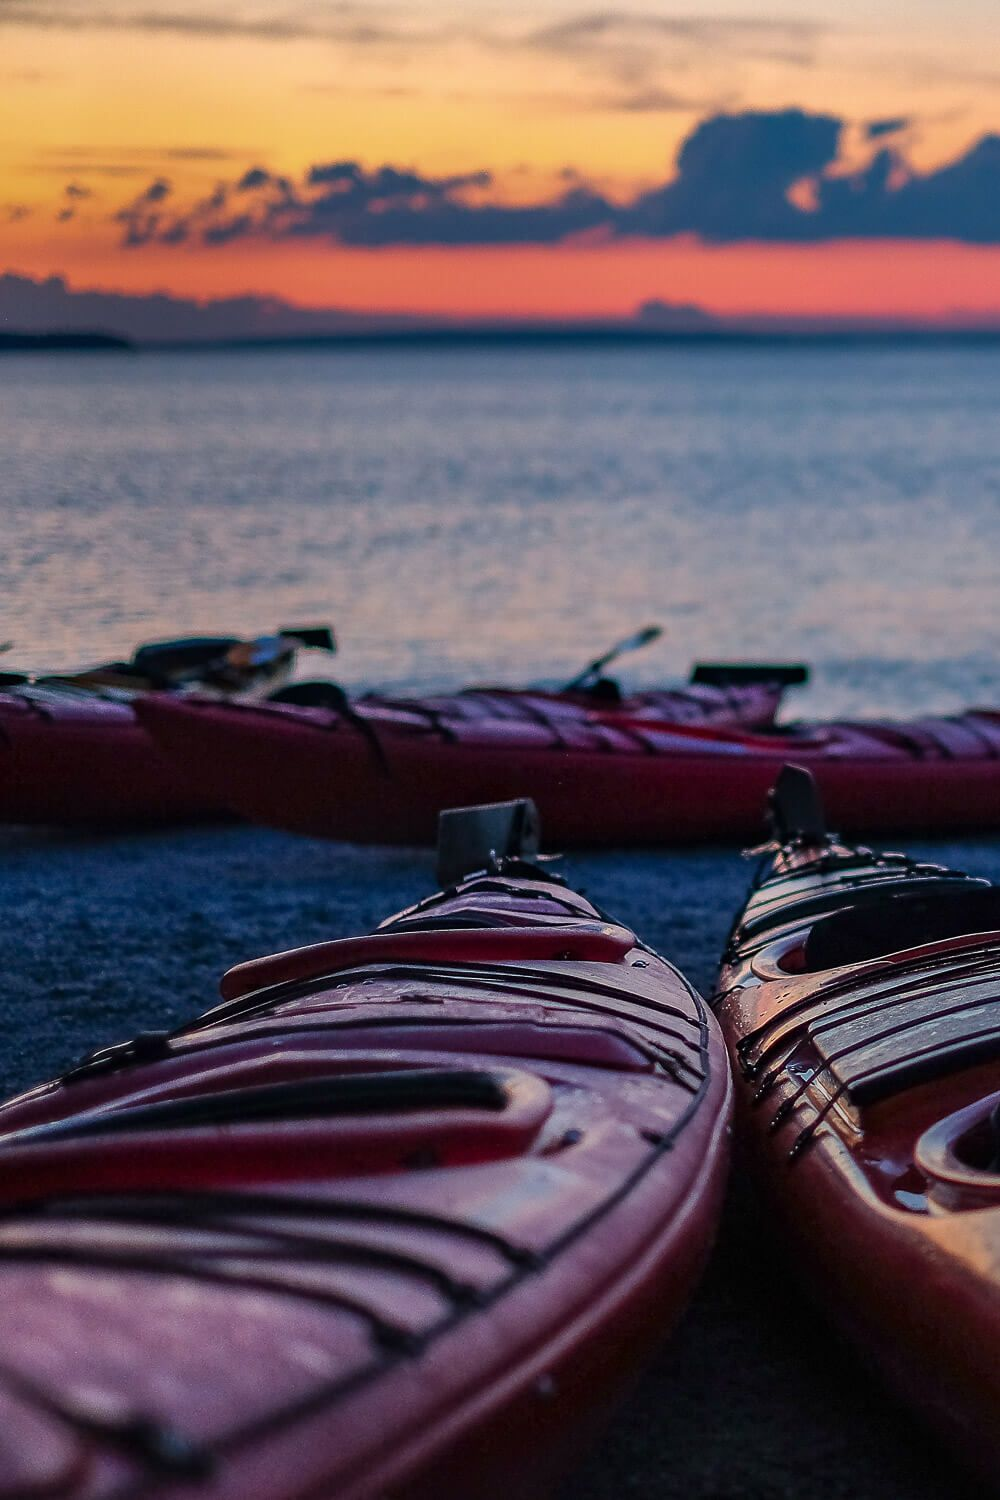 sea kayaking: One day in acadia national park